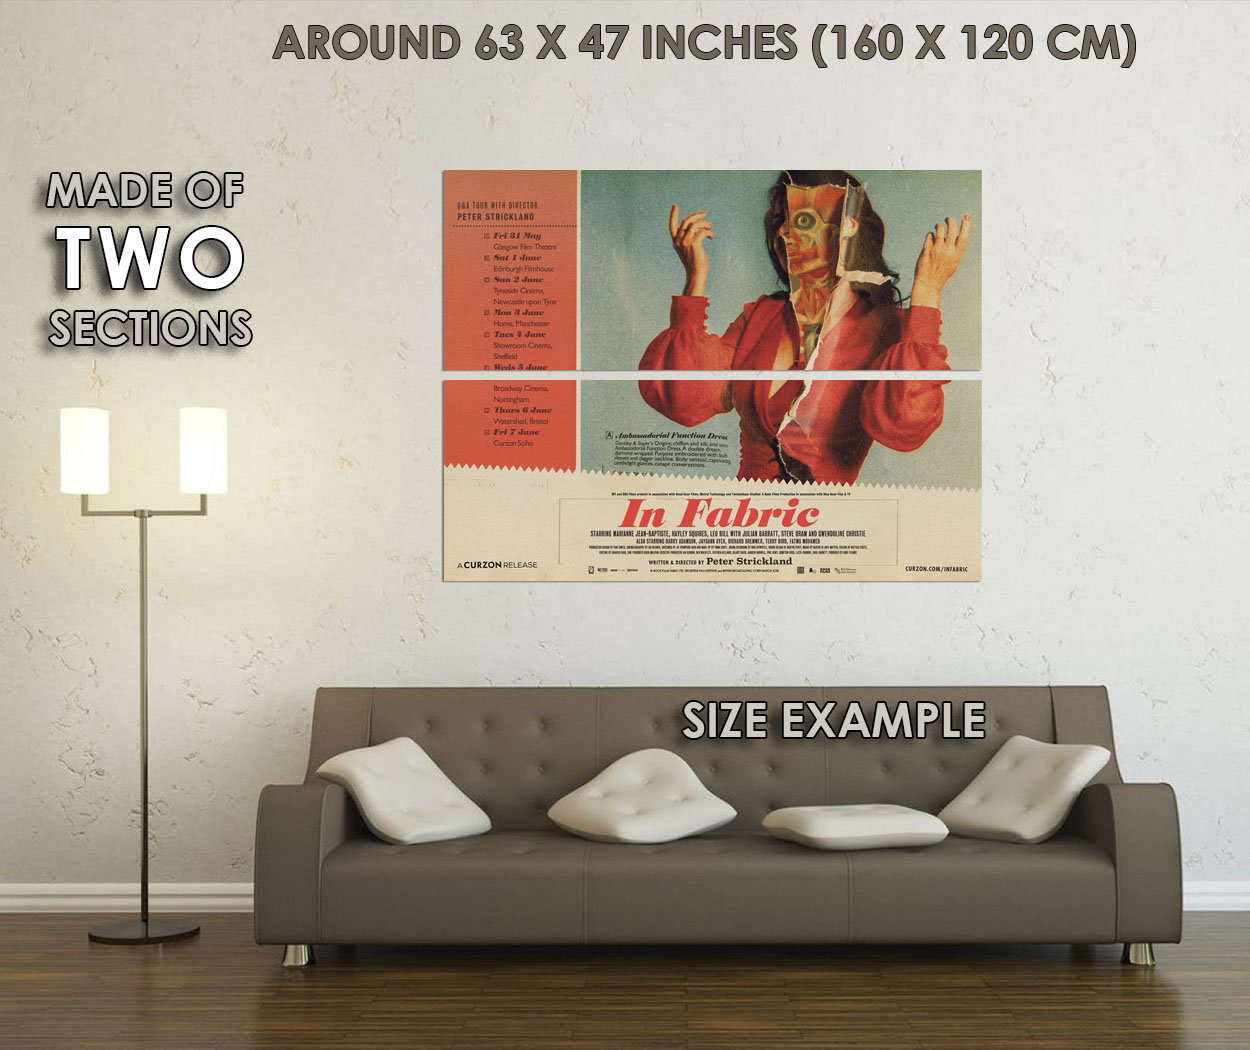 238752 In Fabric Movie WALL PRINT POSTER UK